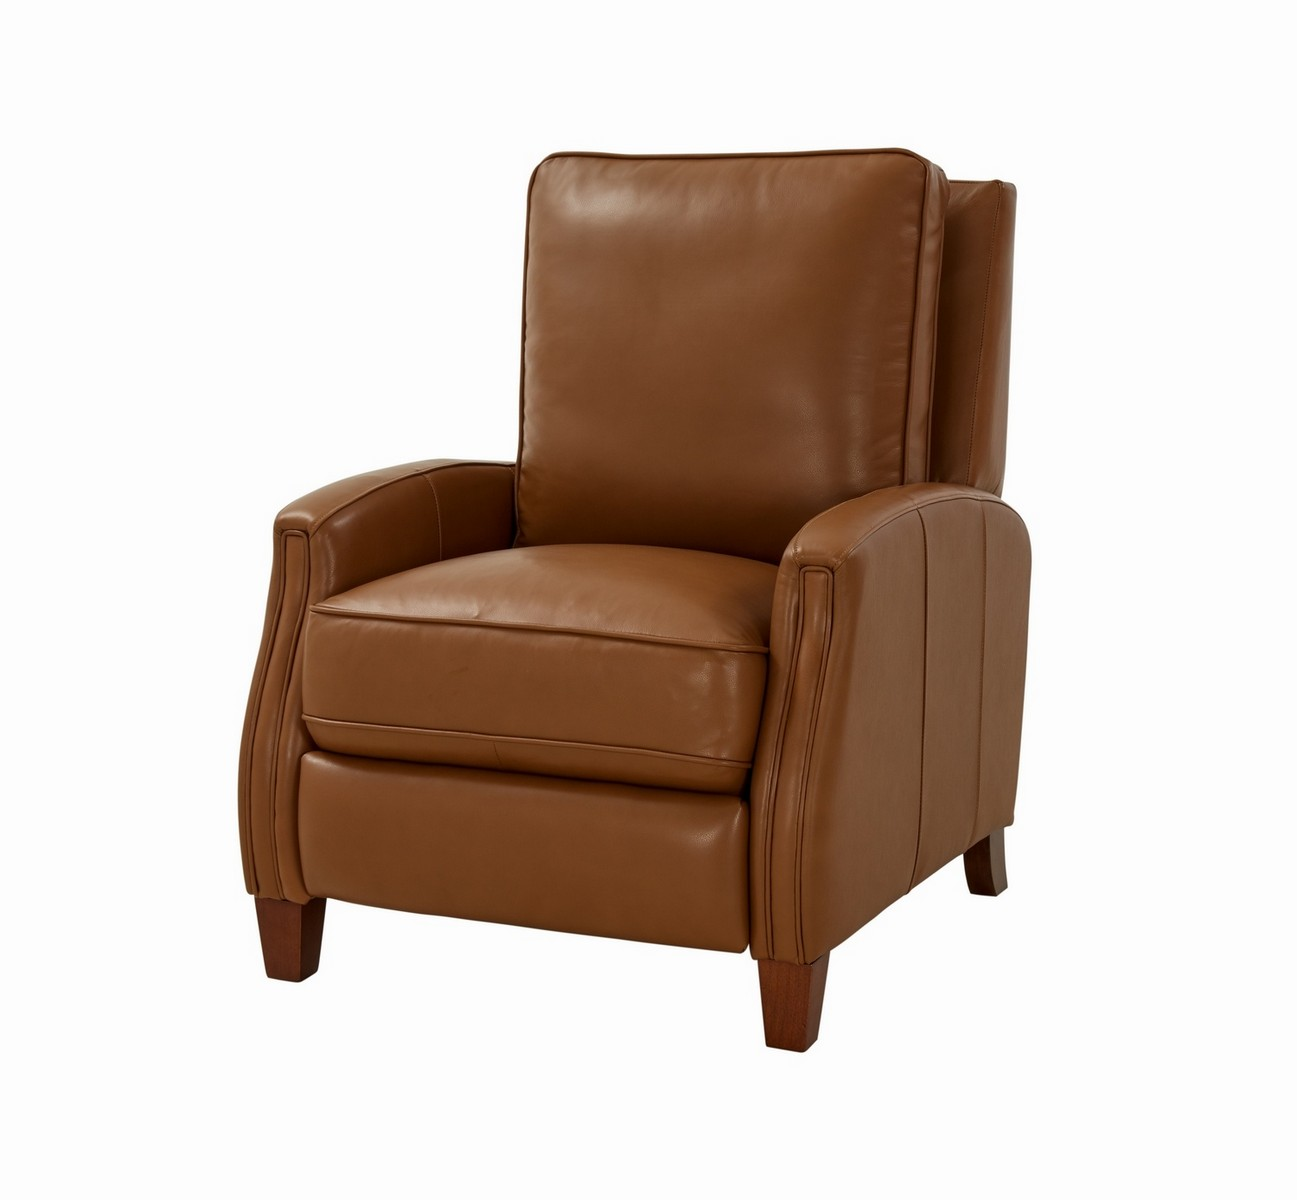 Barcalounger Penrose Power Recliner Chair - Shoreham Ponytail/All Leather